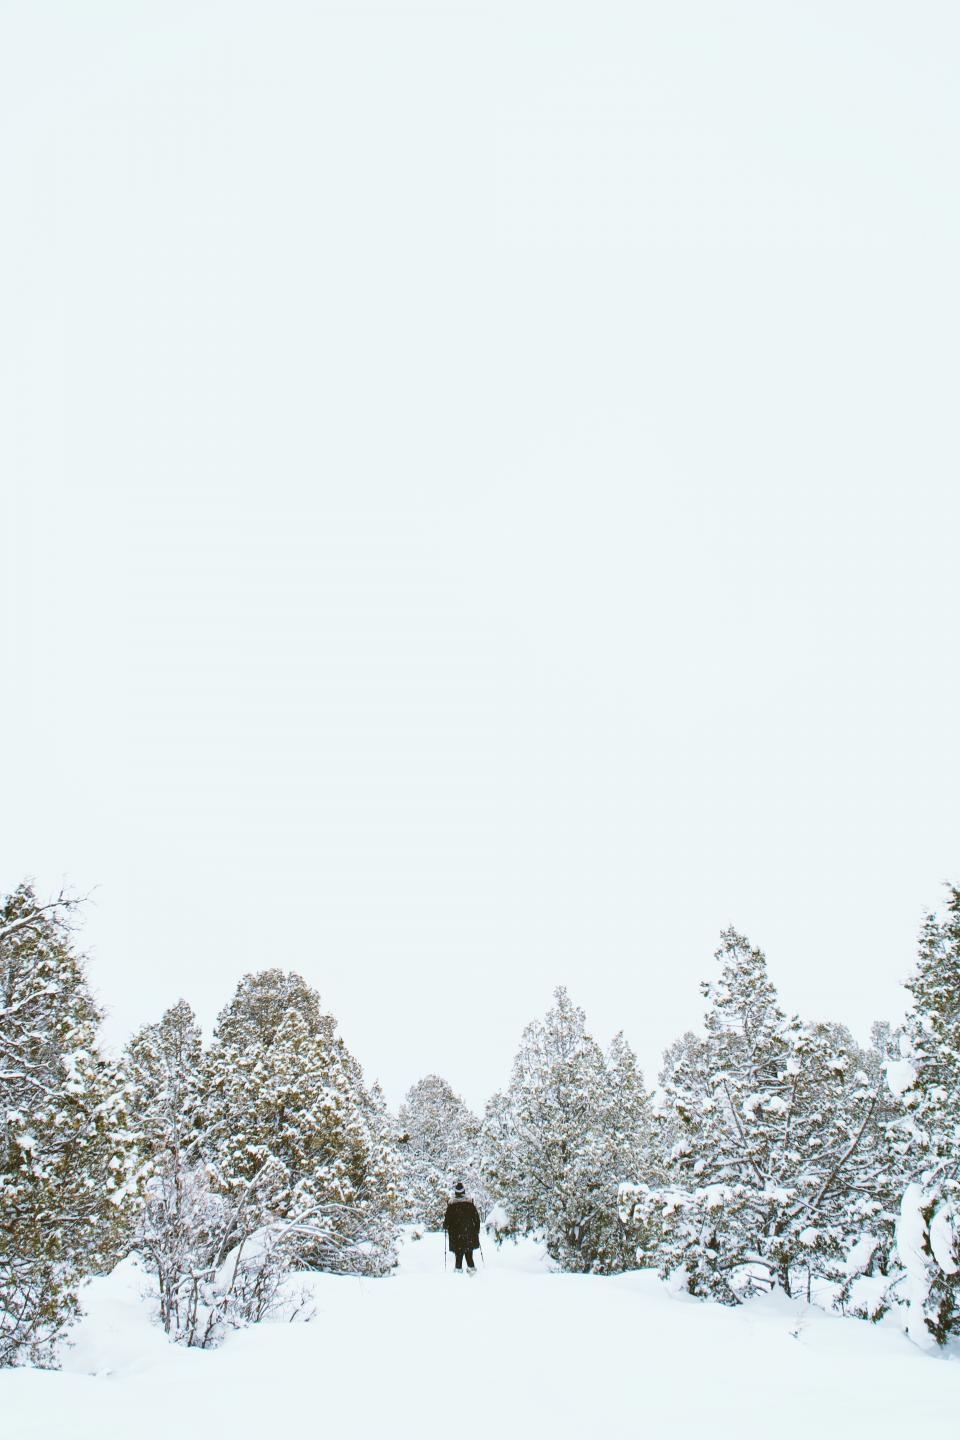 snow, winter, white, cold, weather, ice, trees, plants, nature, people, man, jacket, bonnet, alone, glide, ski, hobby, sport